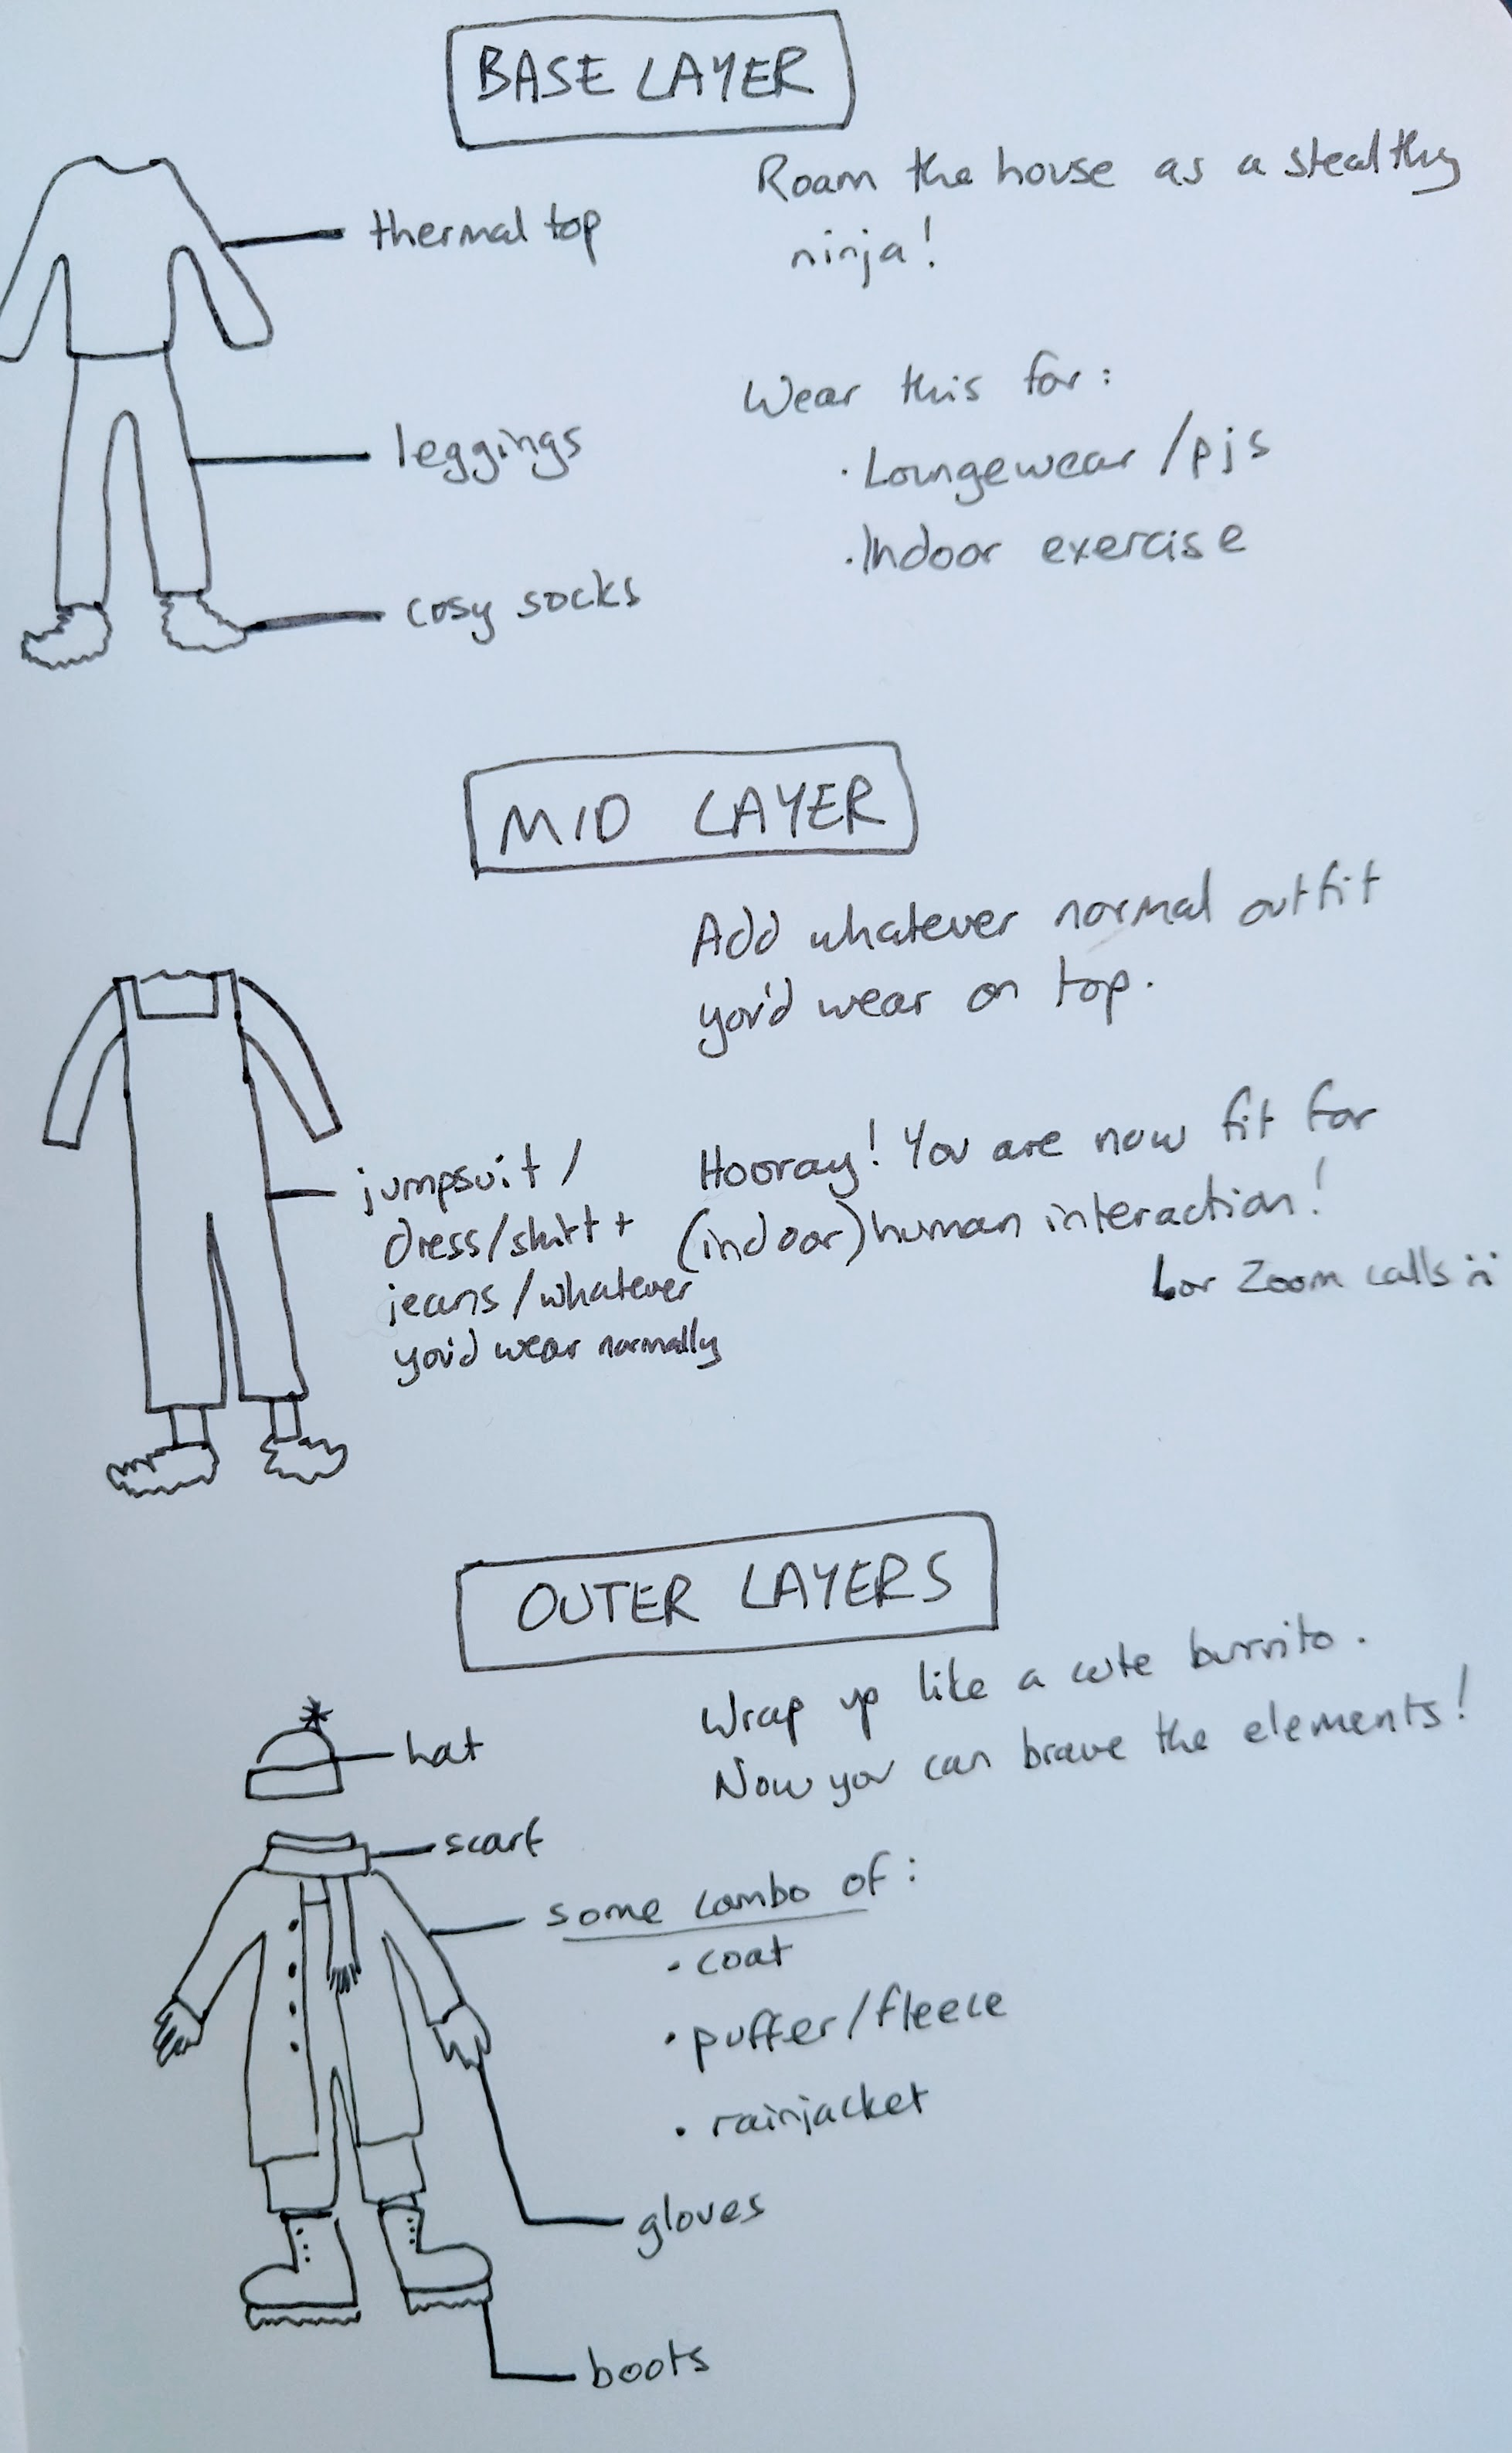 A drawing showing a base layer (leggings, a thermal top and socks), a mid layer (add whatever outfit you'd wear normally) and then an outer layer (hat, scarf, gloves, boots, and some combination of coat, puffer or fleece, and rainjacket)